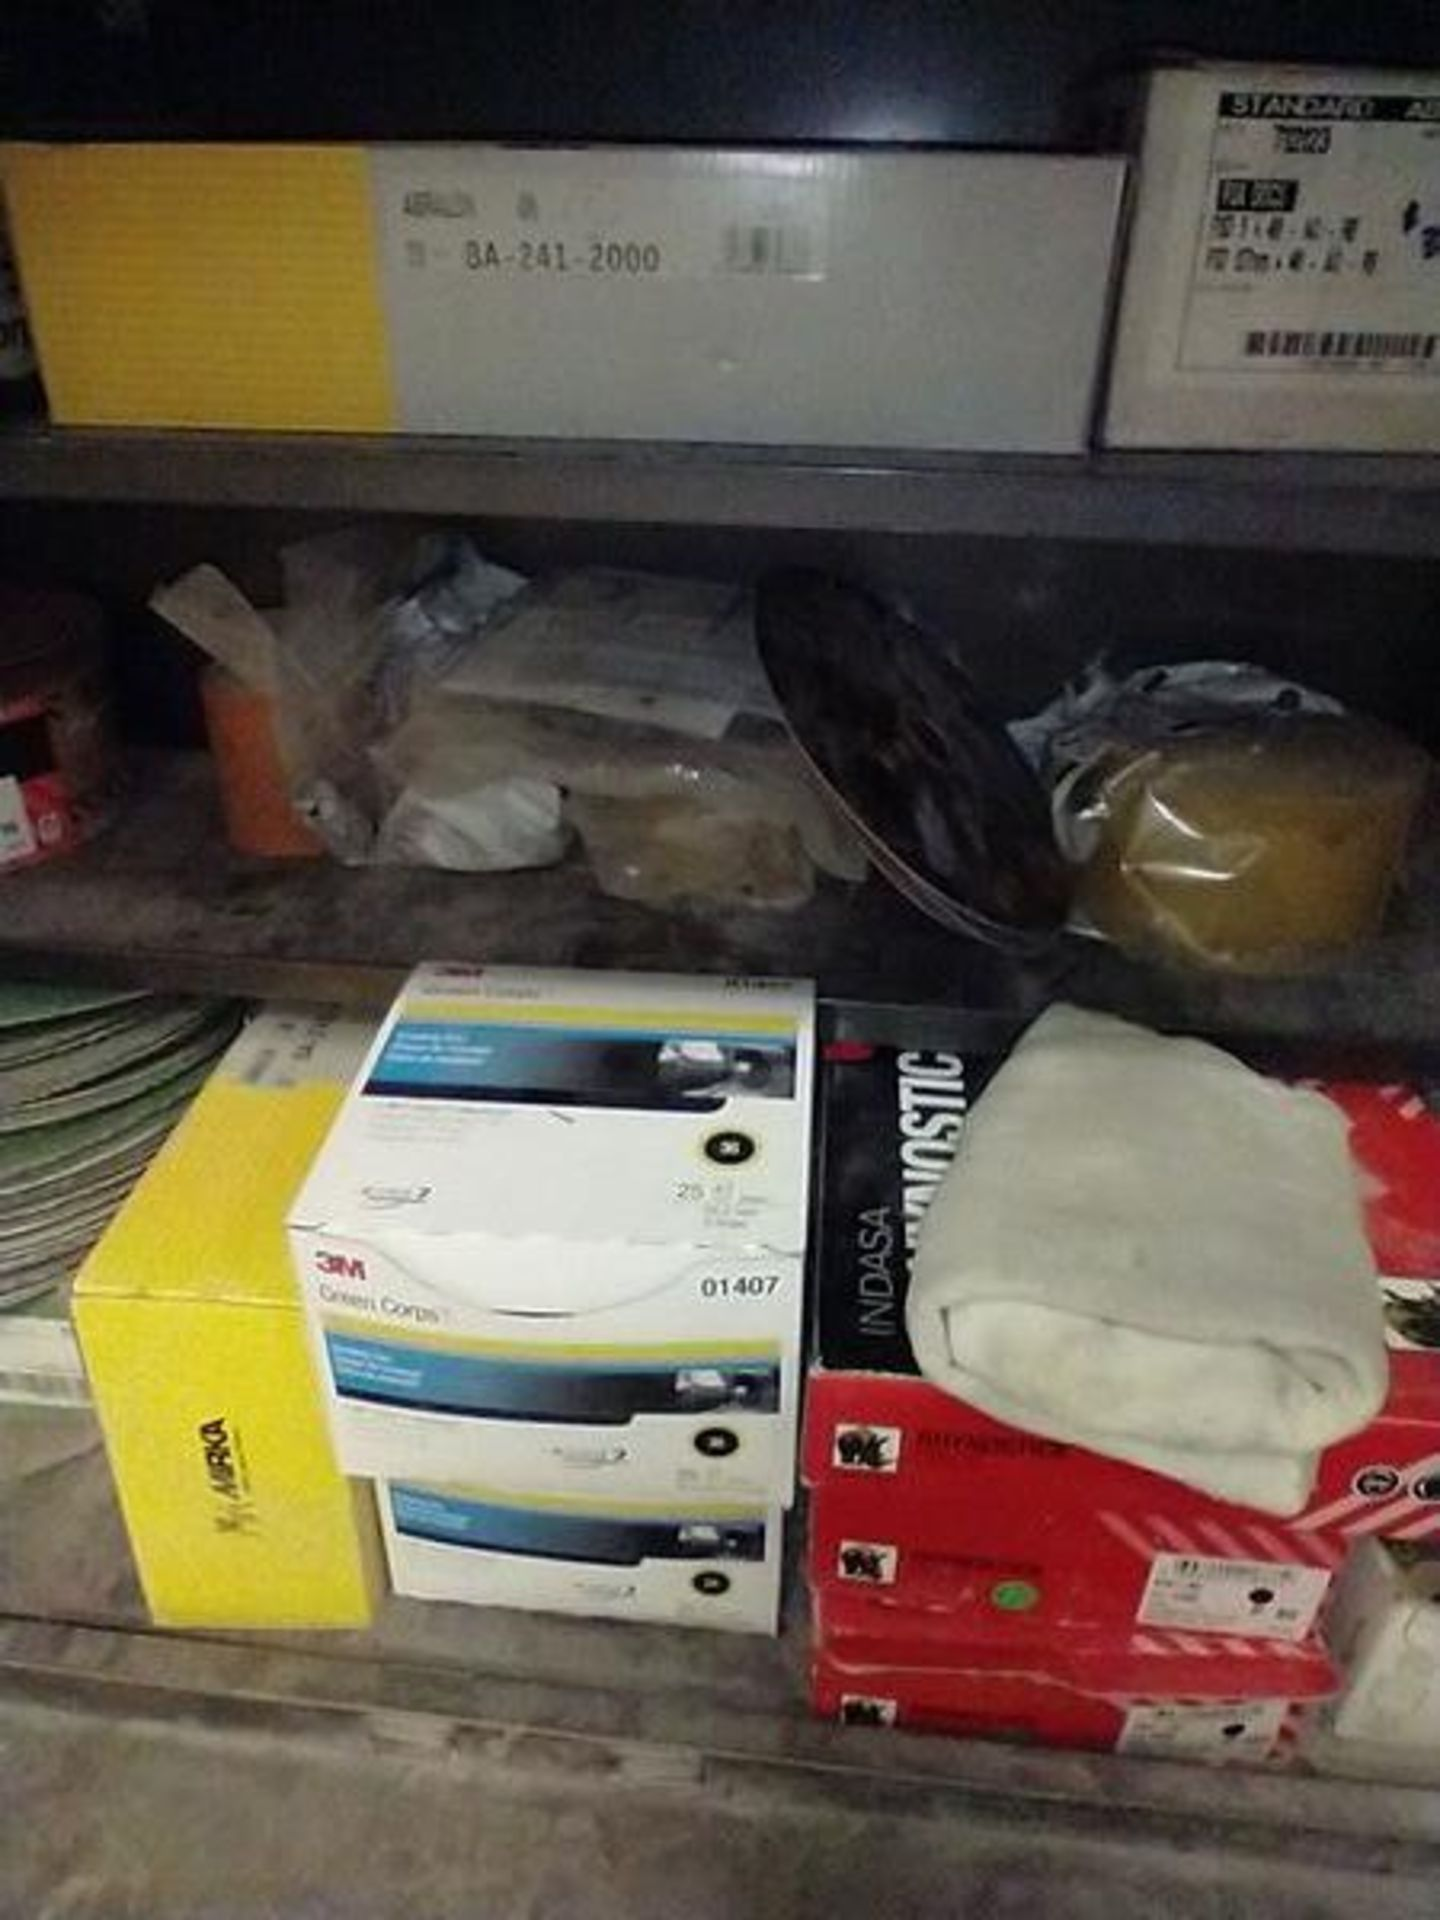 LOT OF ABRASIVE SHEETS, DISCS AND SANDING BLOCKS ON AND INSIDE CABINET (CABINET SOLD SEPARATELY) - Image 4 of 7